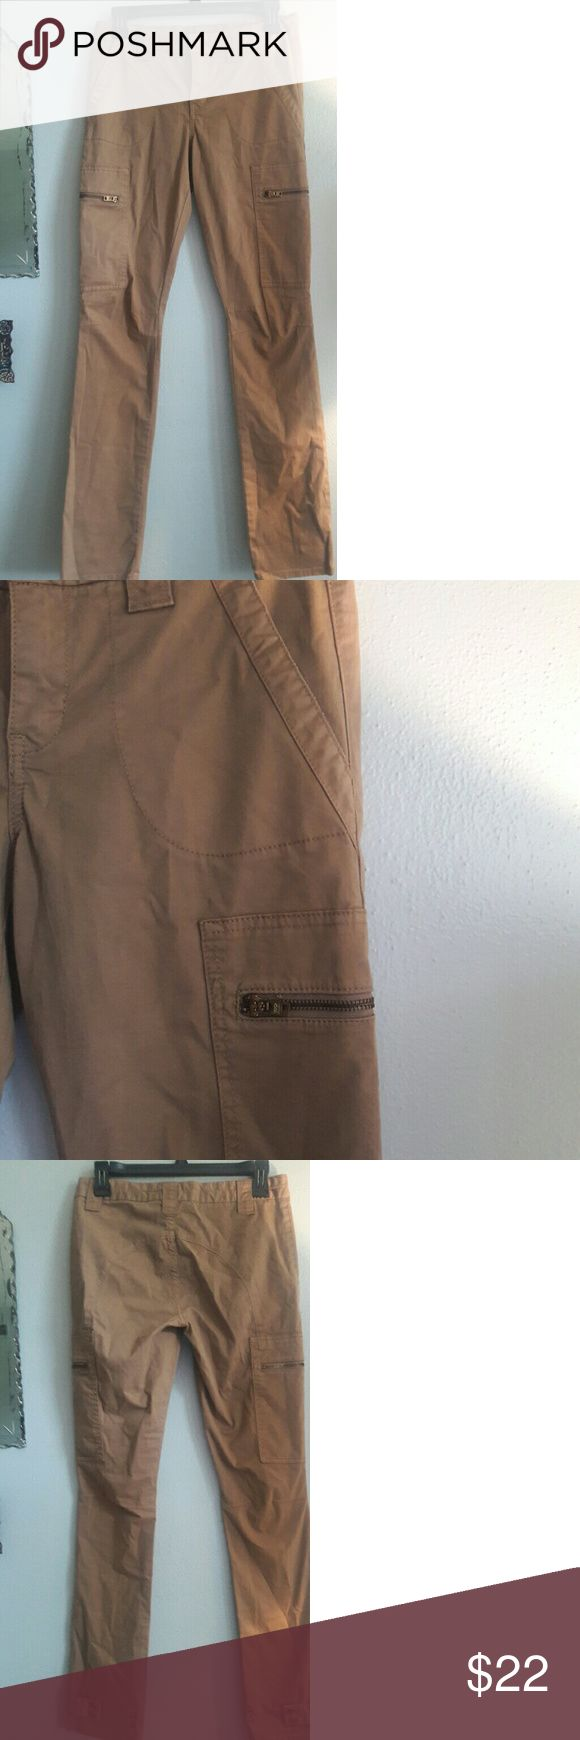 Tory Burch Slim Fit Cargo Pants size 6 Slim Fit Khaki Cargo Pants. Zipper pockets, strap /snap ankle detail. Tory Burch size 6 Tory Burch  Pants Skinny